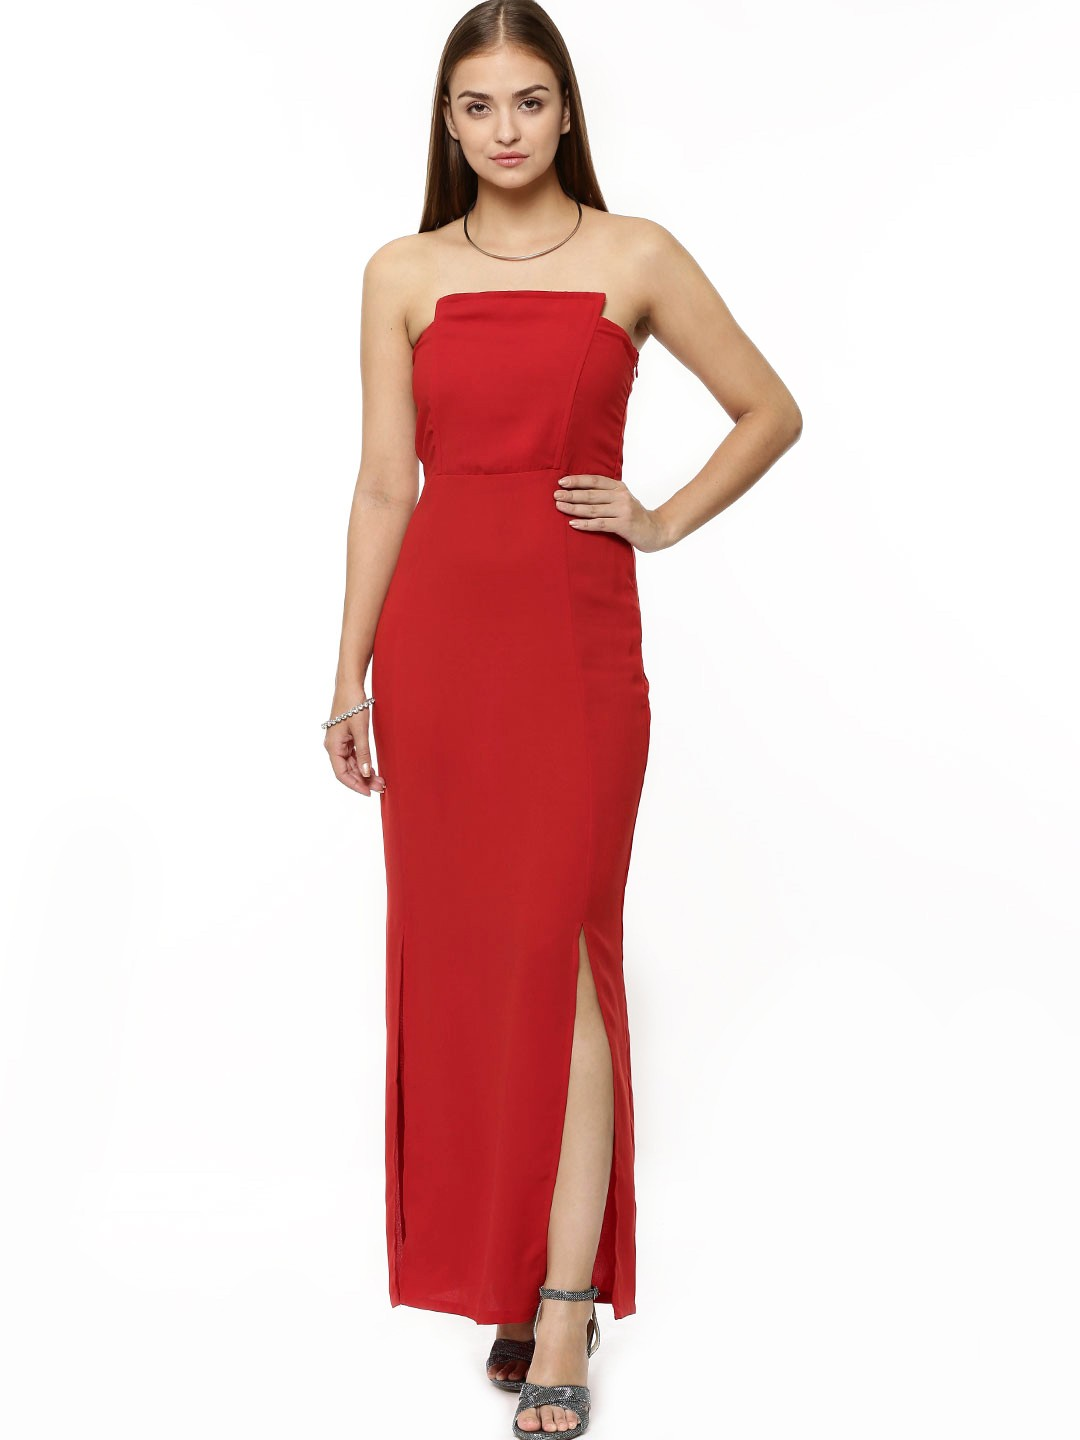 KOOVS Red Bandeau Column Maxi Dress In The Style Of Reese Witherspoon 1